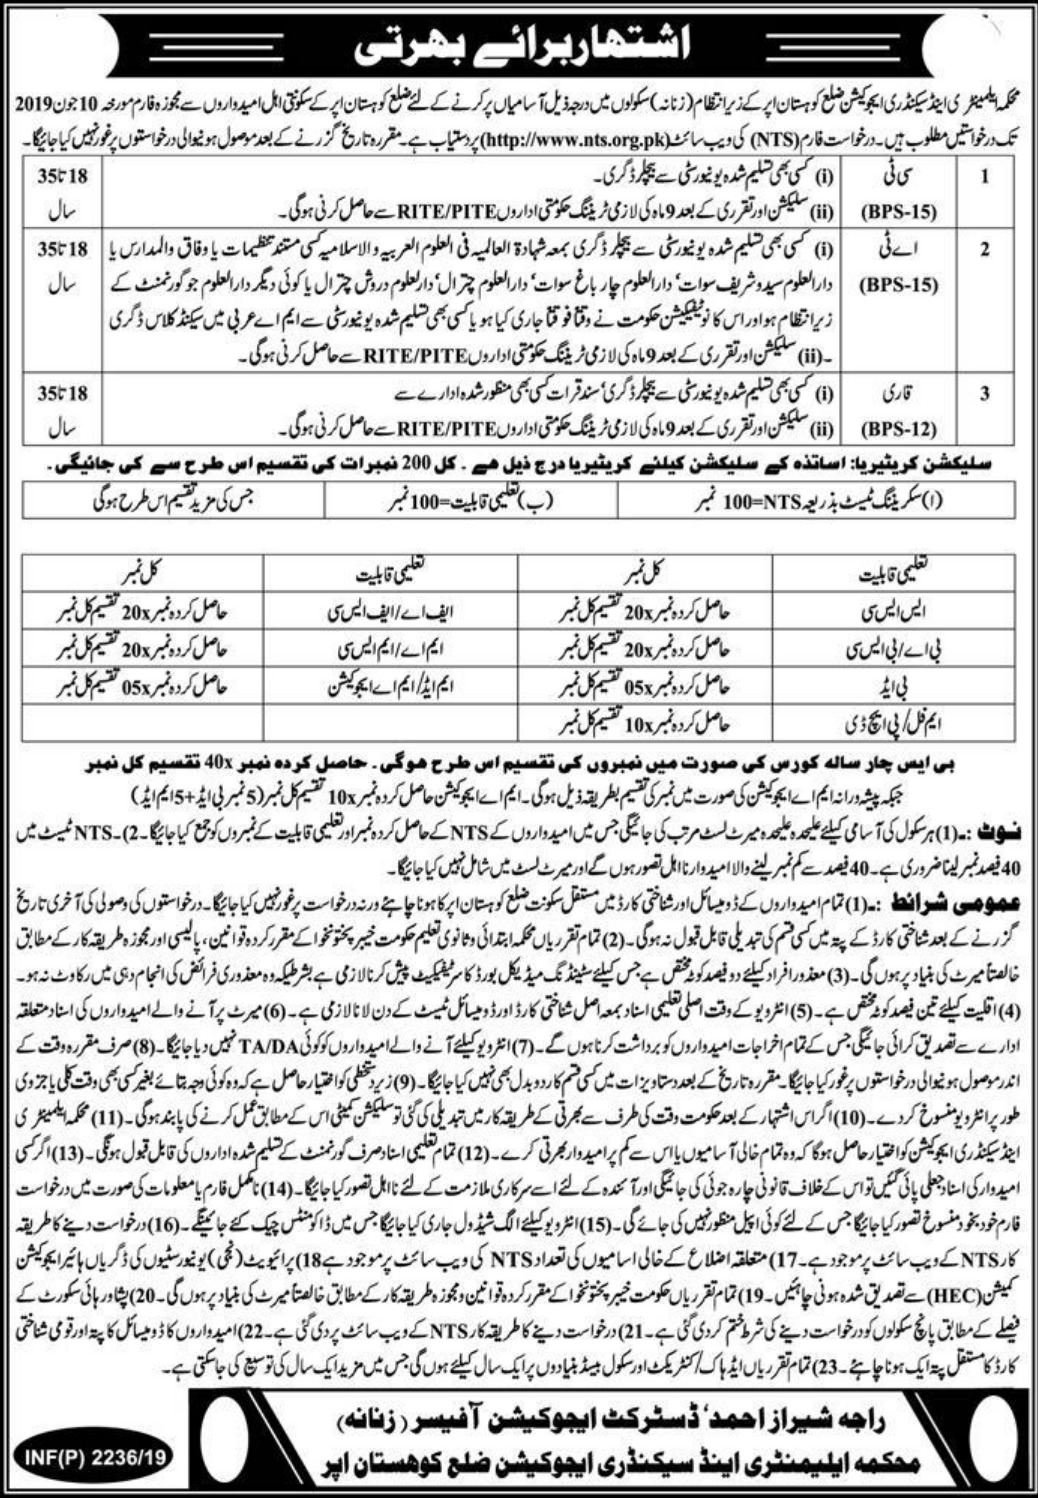 KPK Elementary & Secondary Education Department ESED Jobs 2019 Kohistan